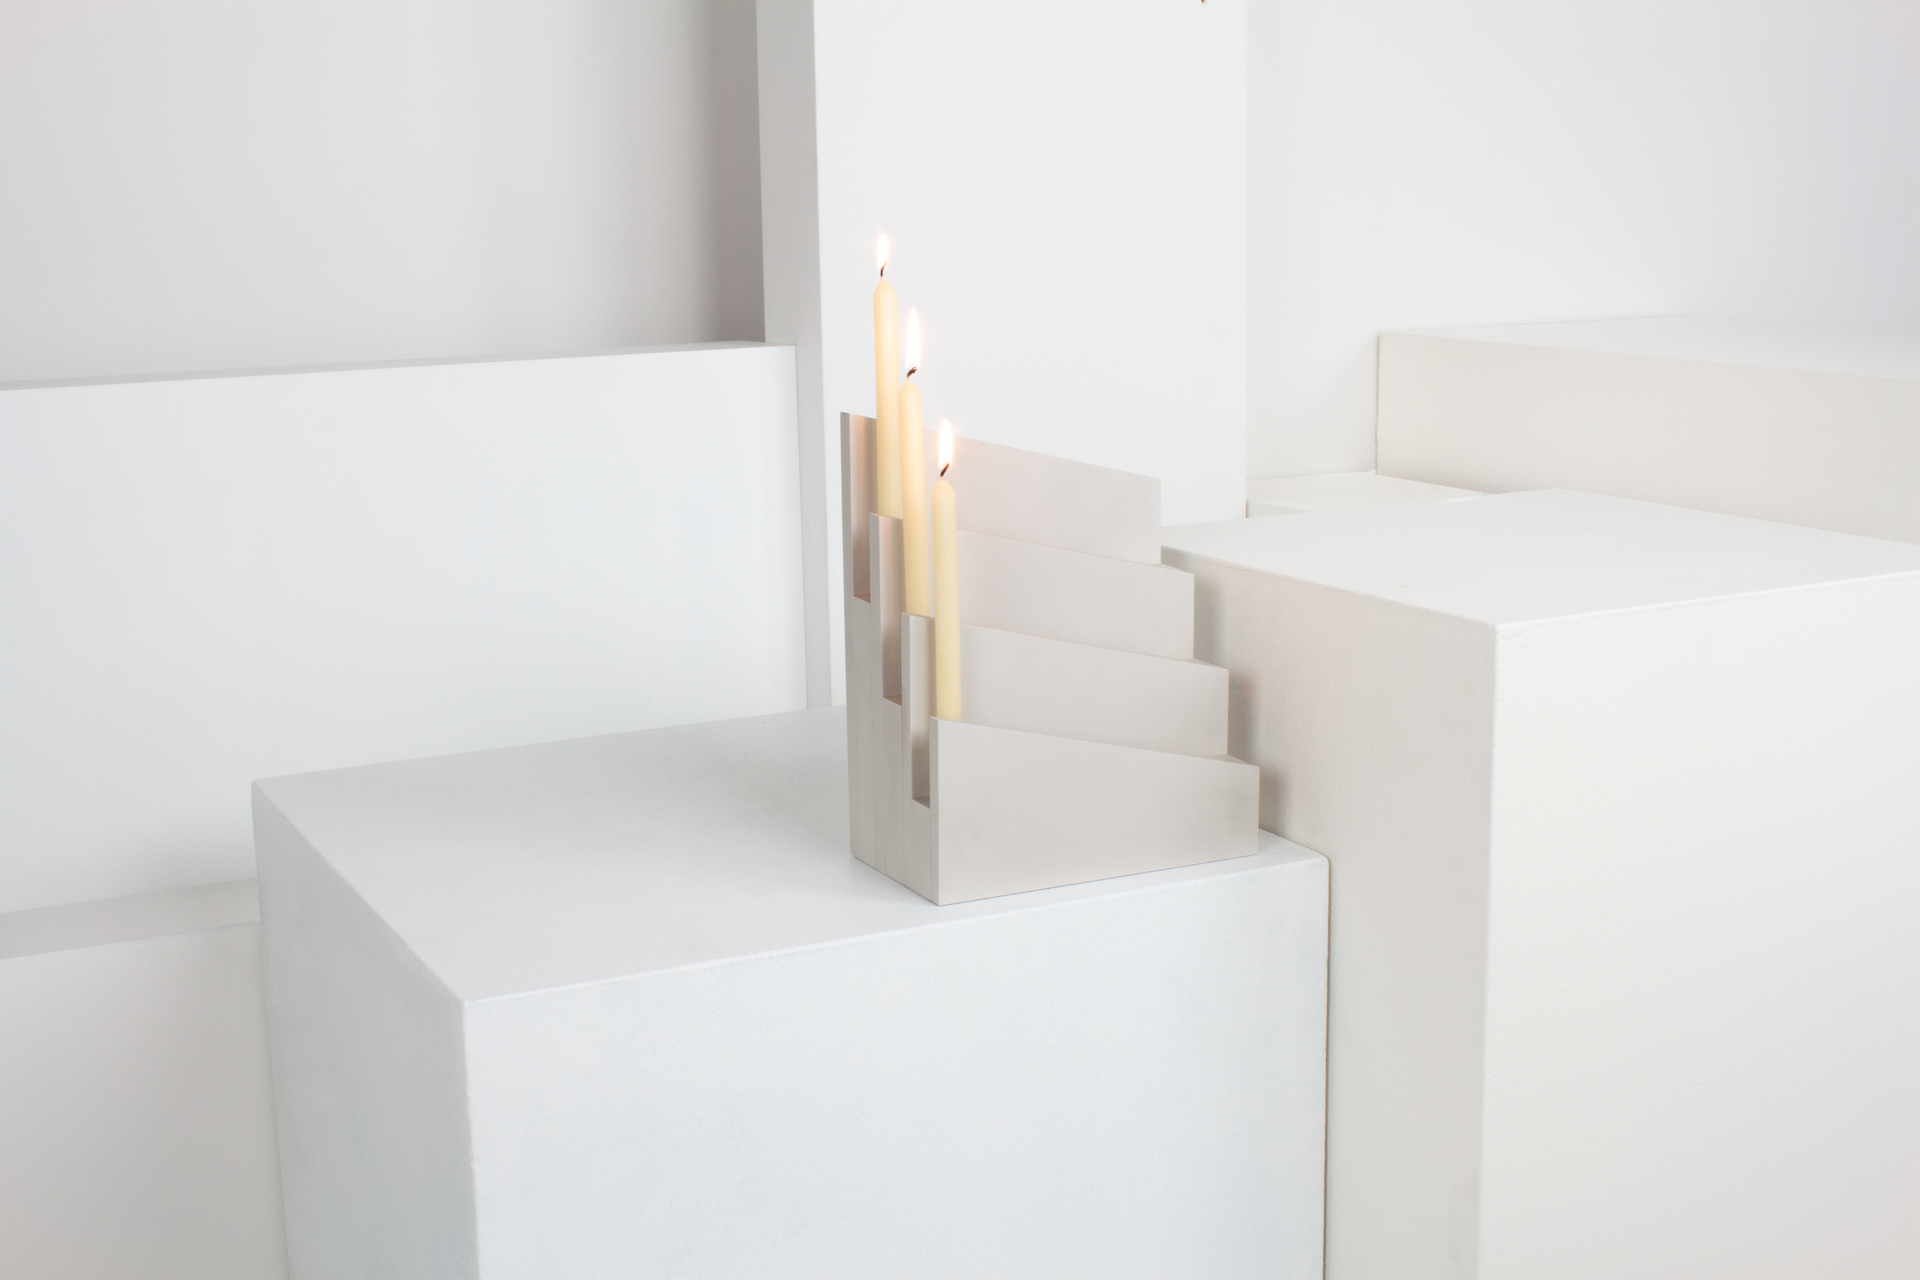 Shrine005 2, 'Differing Perspectives', CraftACT 2020